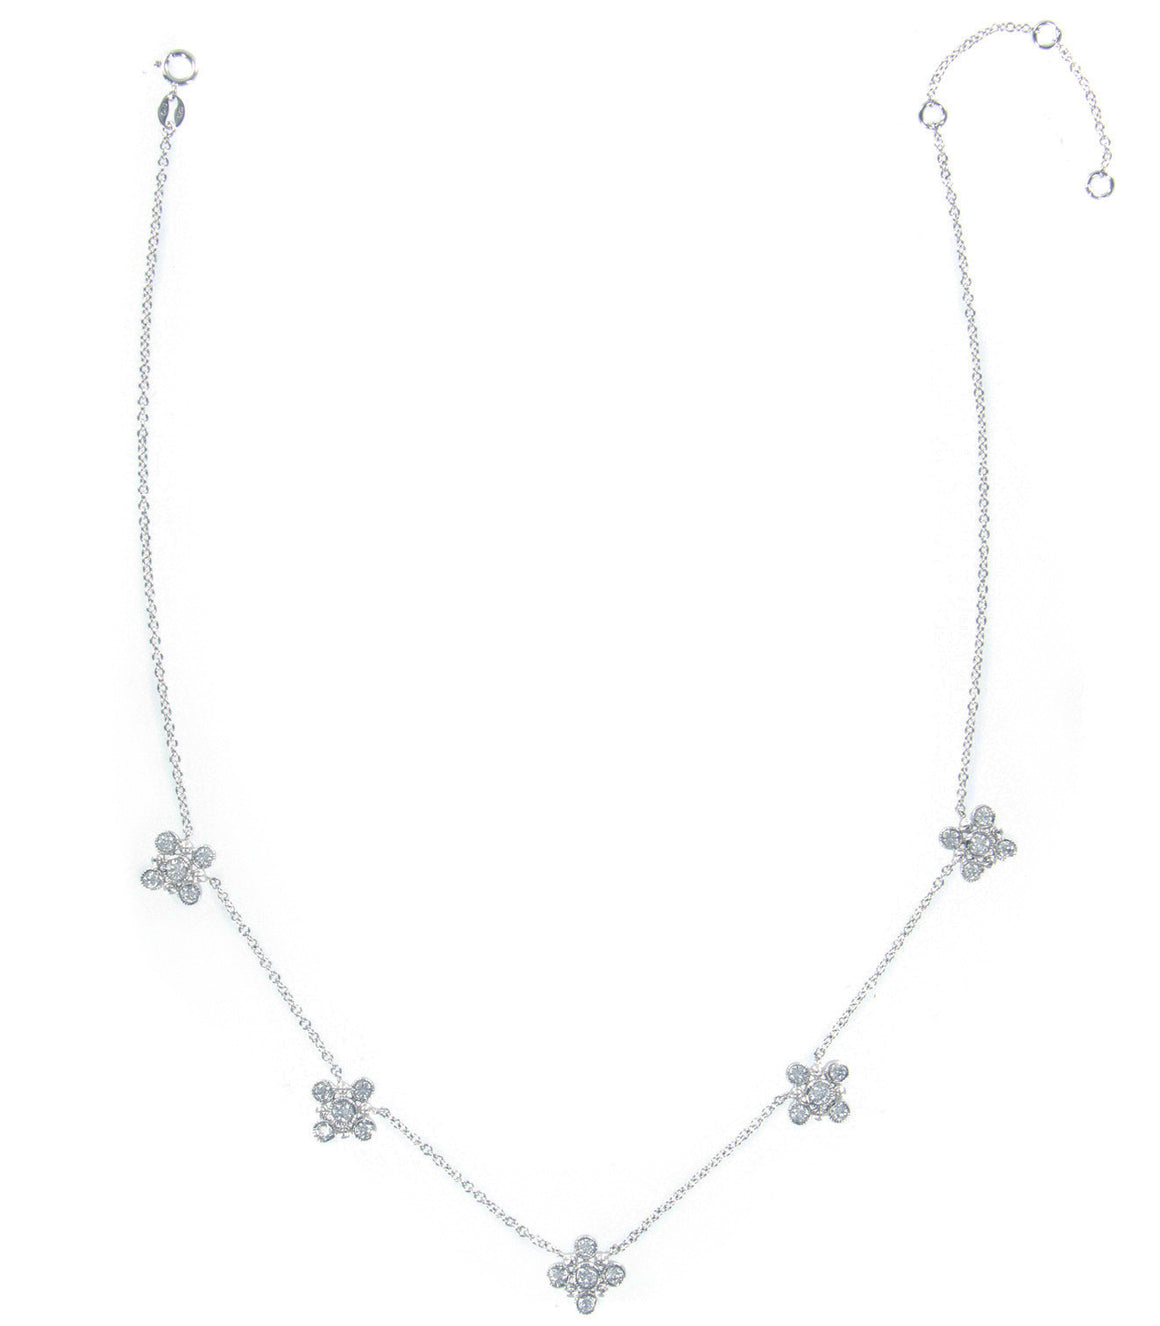 925 sterling silver quatrefoil clover necklace